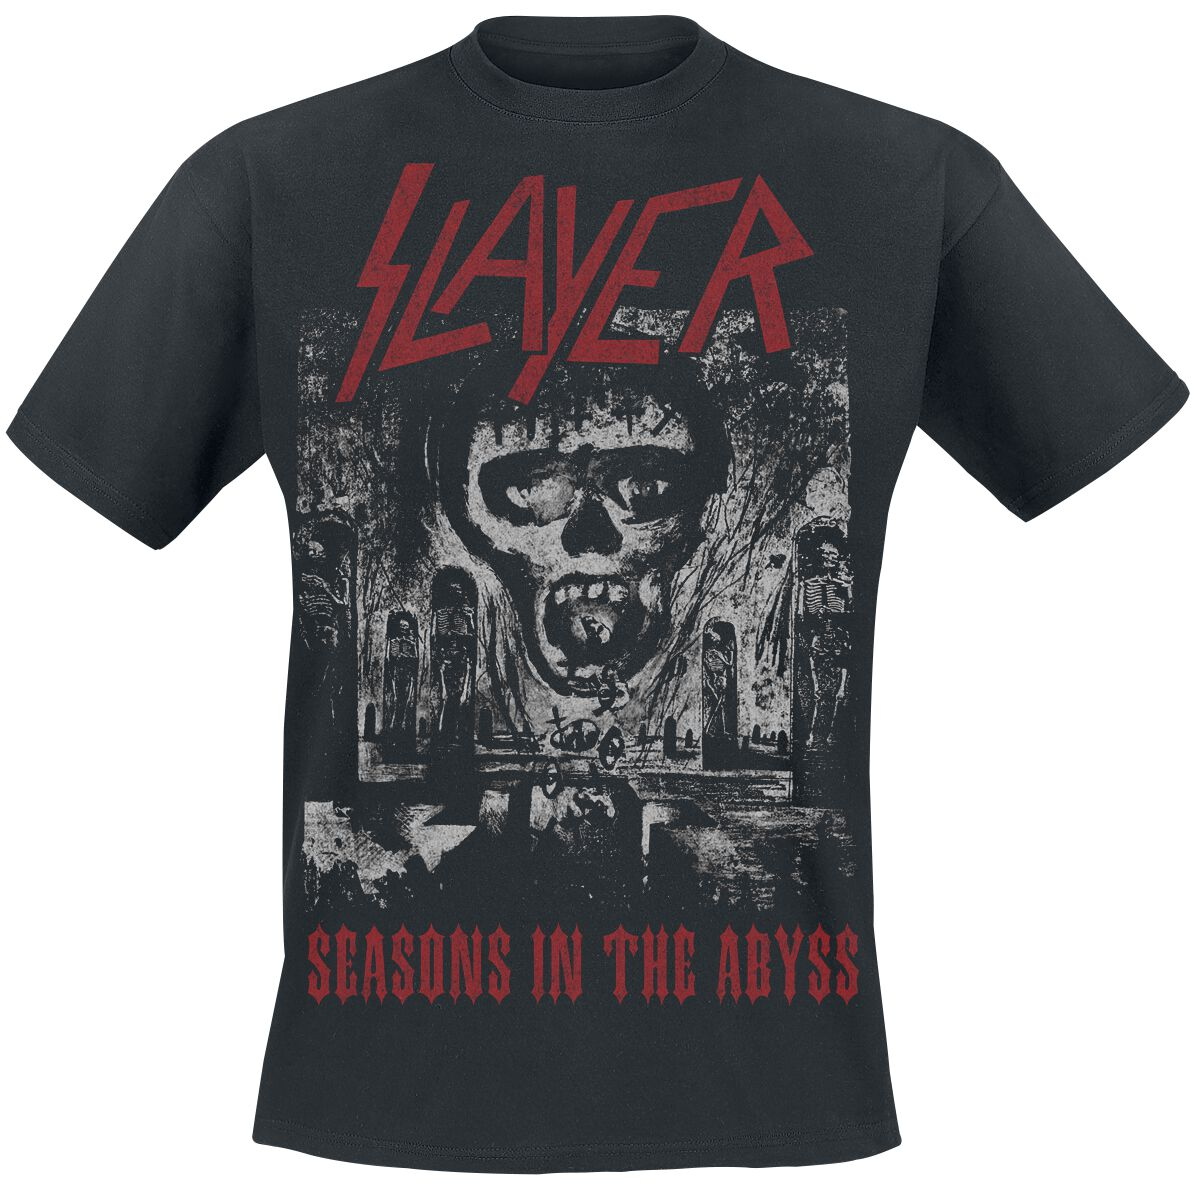 Image of   Slayer Seasons In The Abyss T-Shirt sort